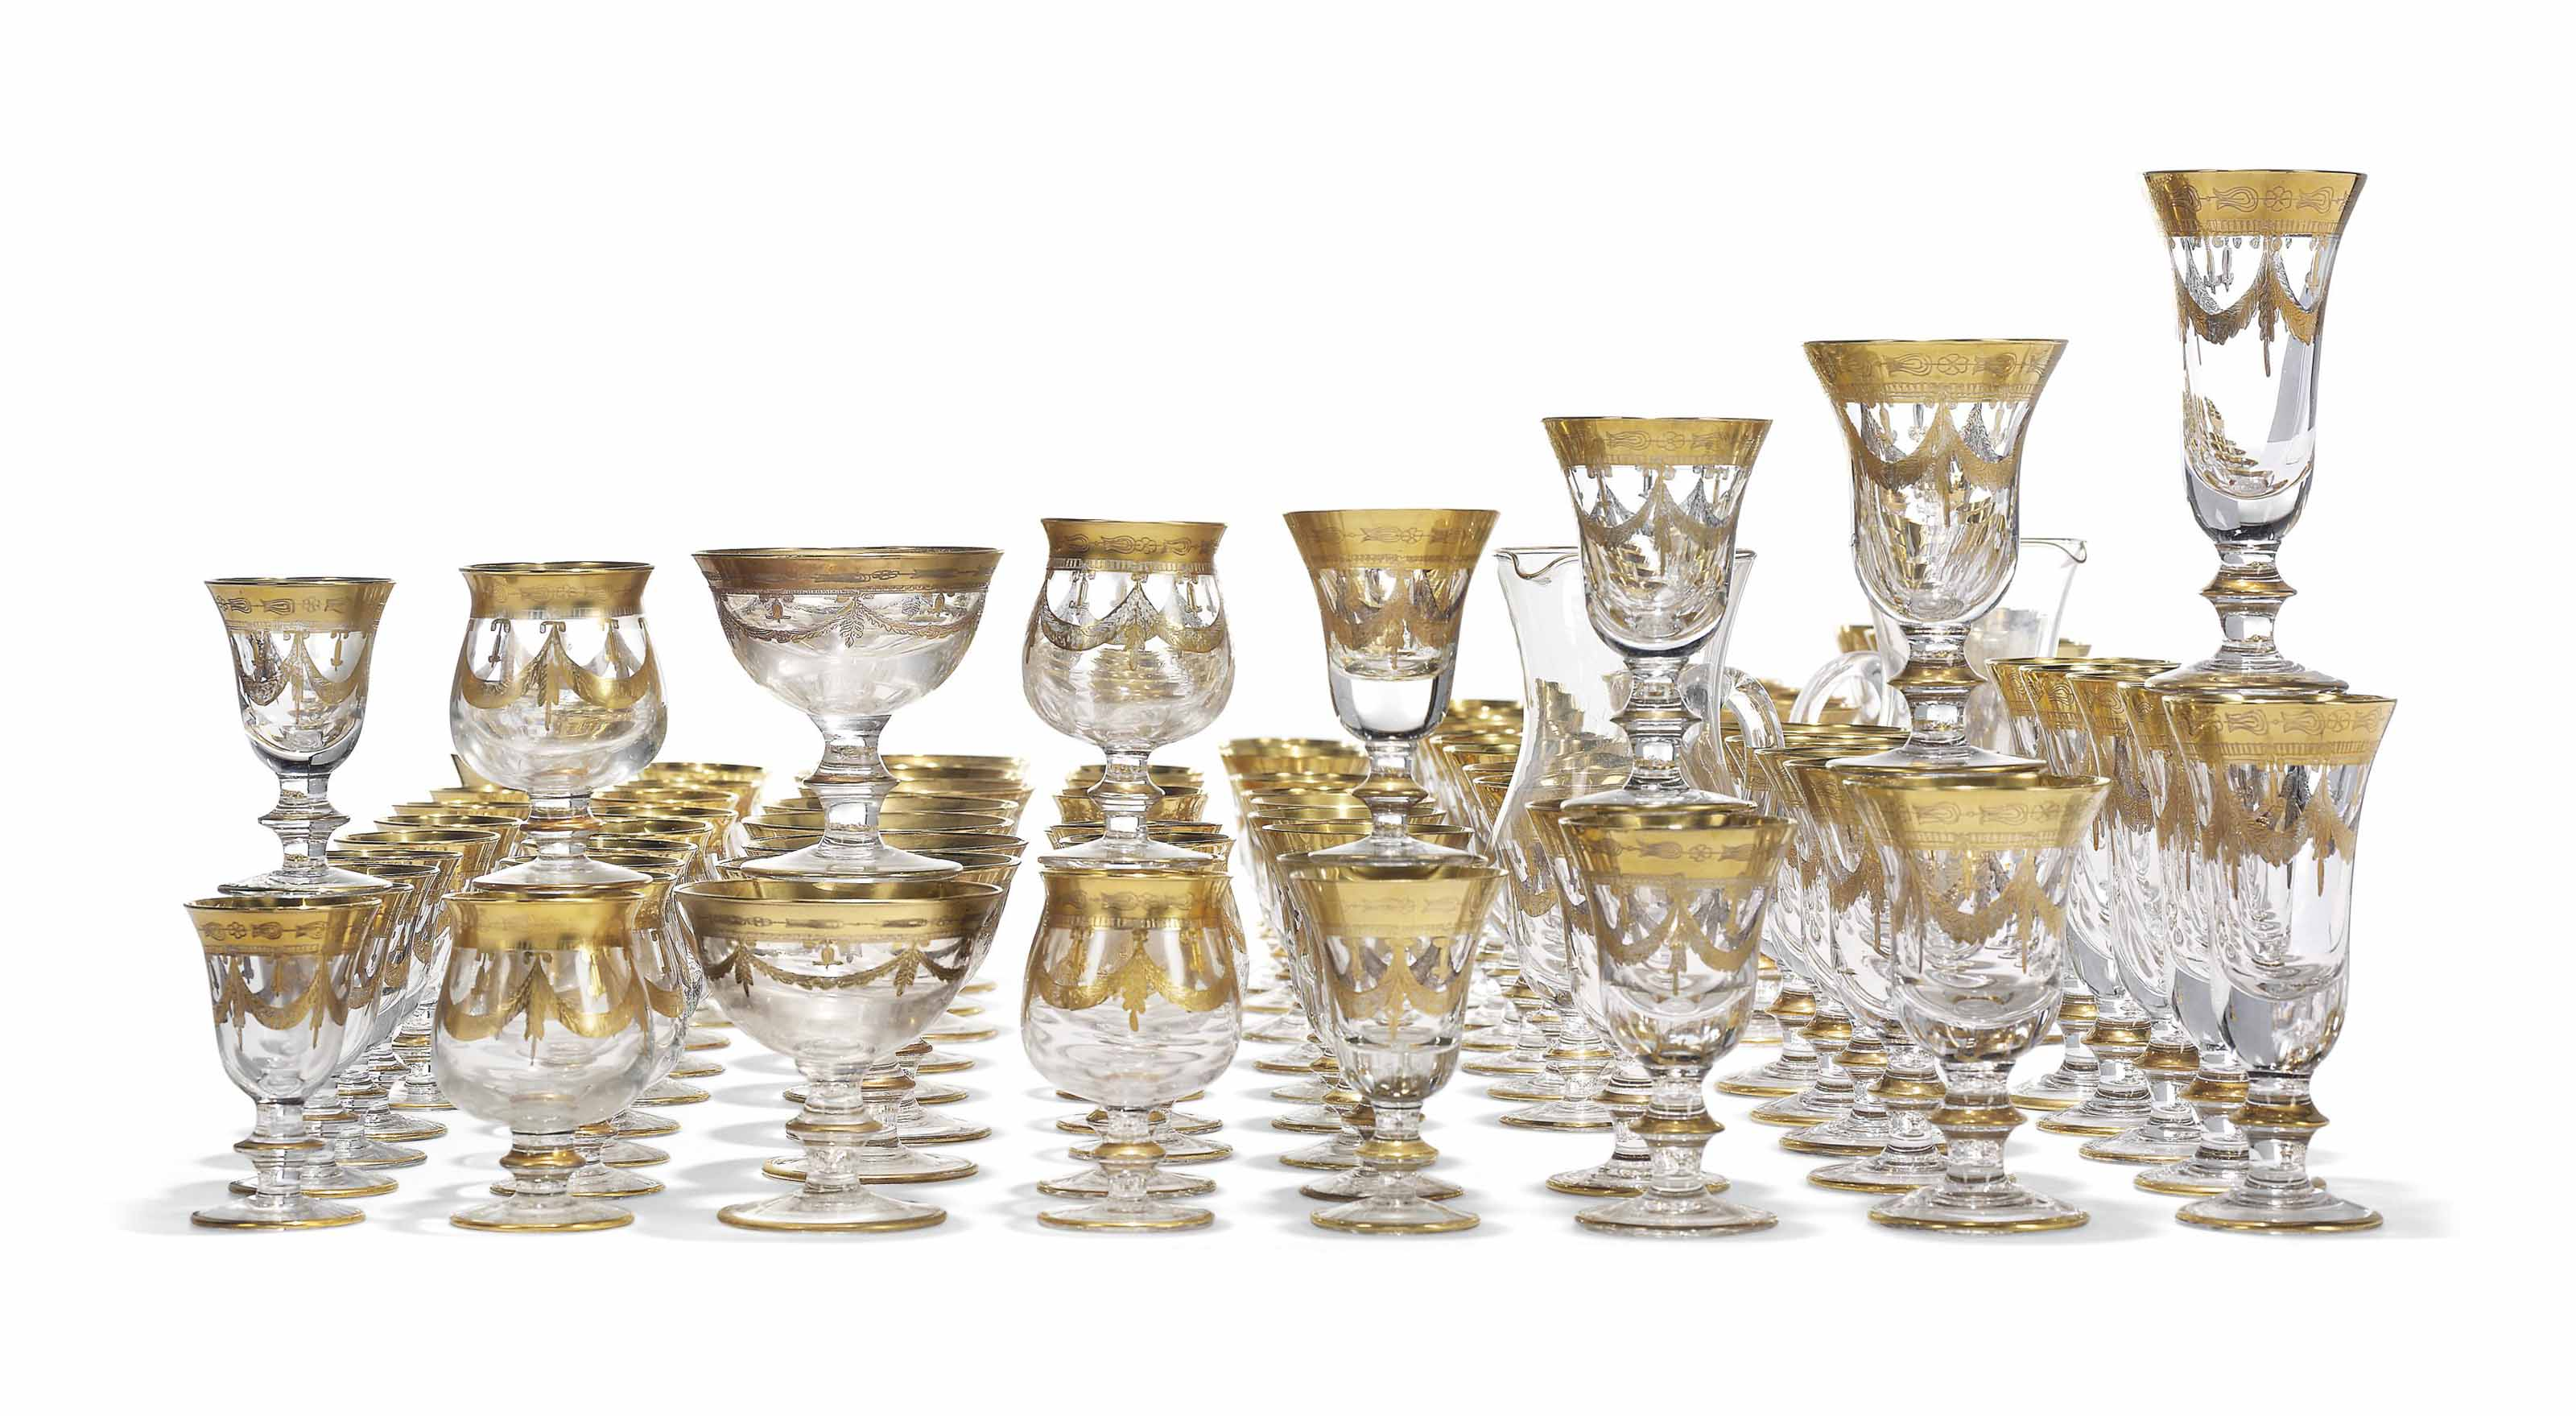 AN EXTENSIVE GILT-DECORATED PART GLASS-SERVICE